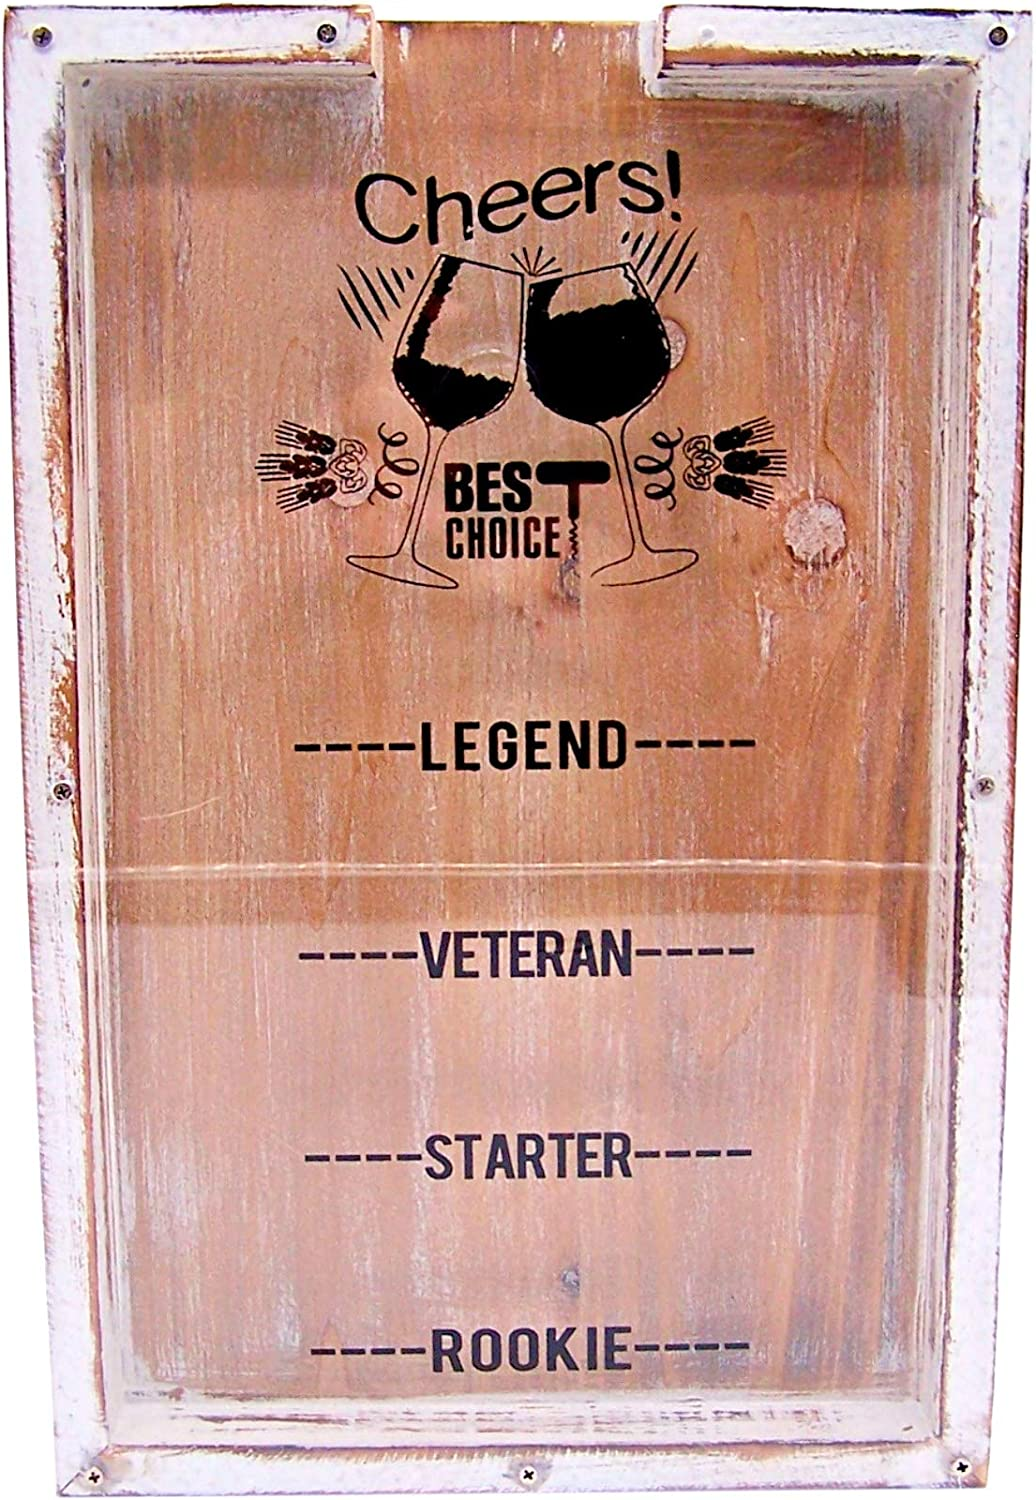 Wooden Wine Cork Shadow Box, Cork Holder Wine Decor for Home and Kitchen, Rustic White, 14.5 Inch